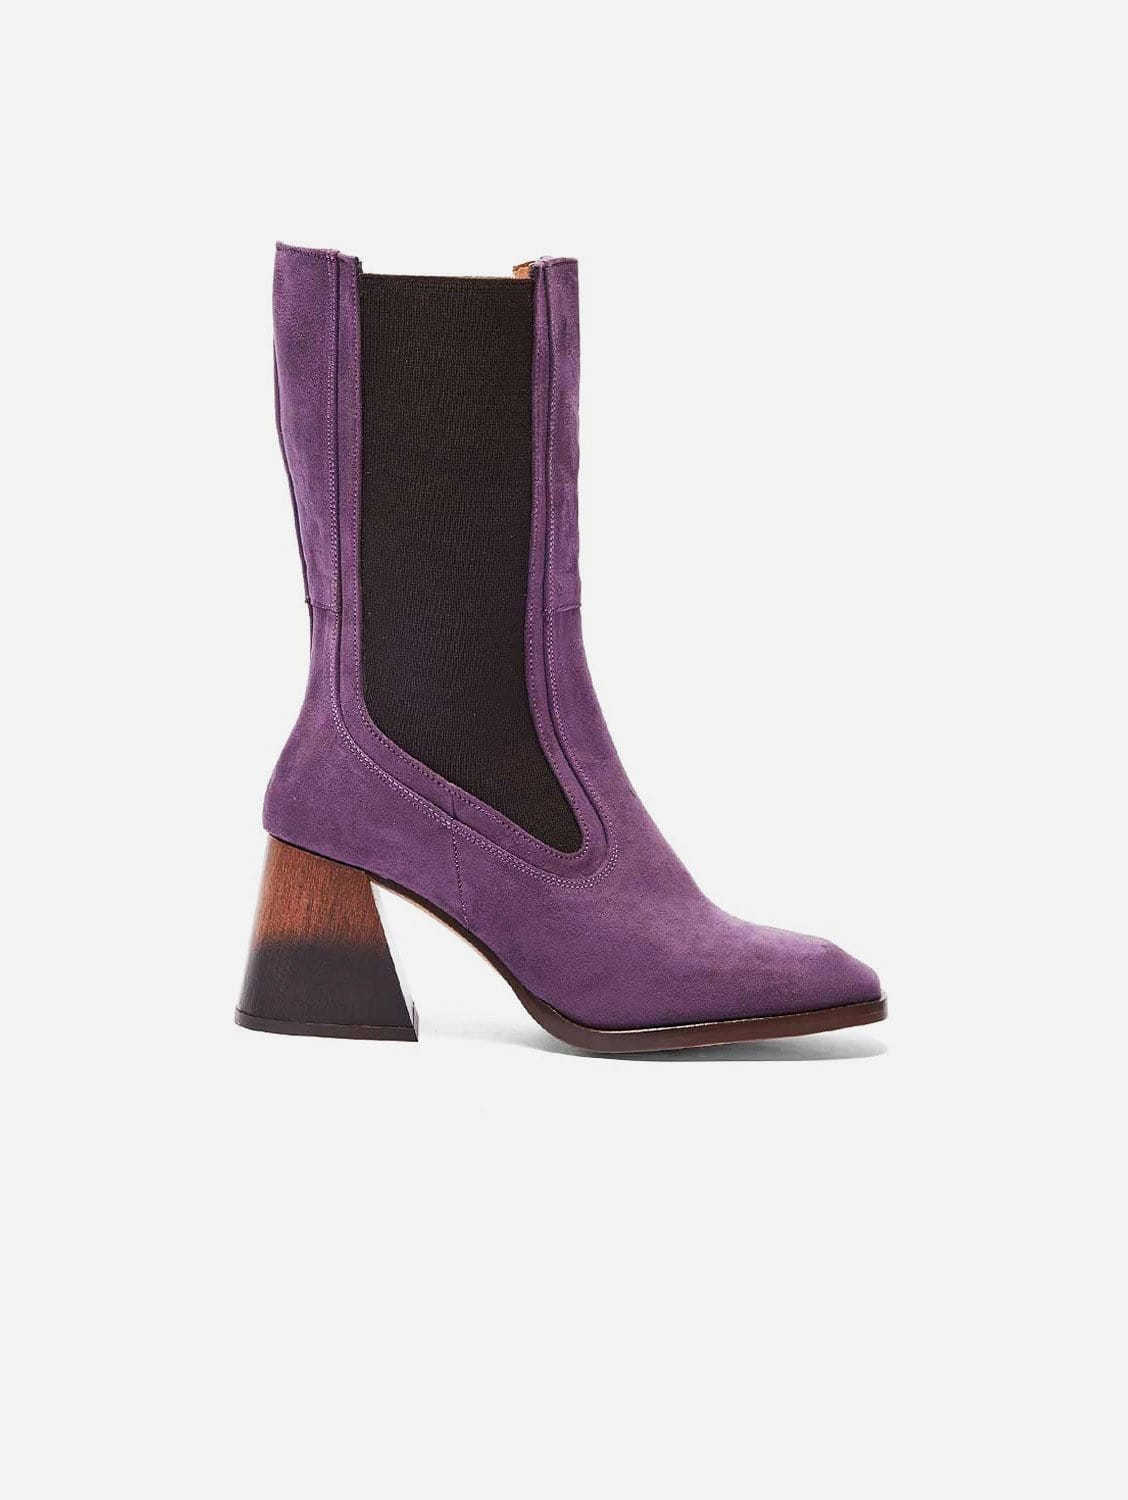 Lola Recycled Polyester Vegan Suede Boots   Lilac